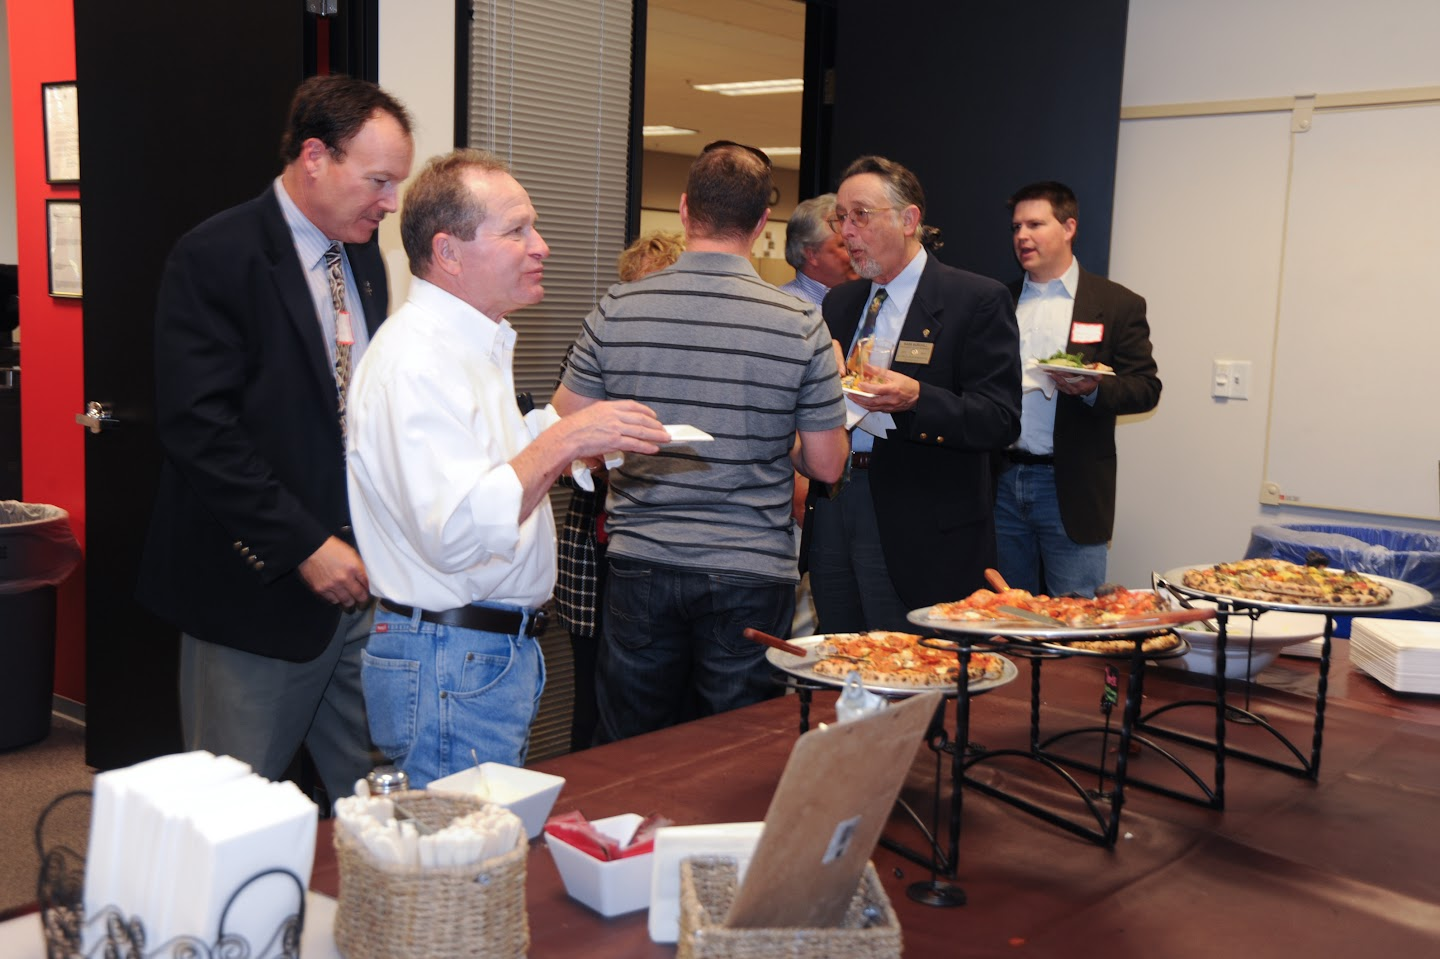 Rotary Means Business at Discovery Office with Rosso Pizzeria - DSC_6796.jpg